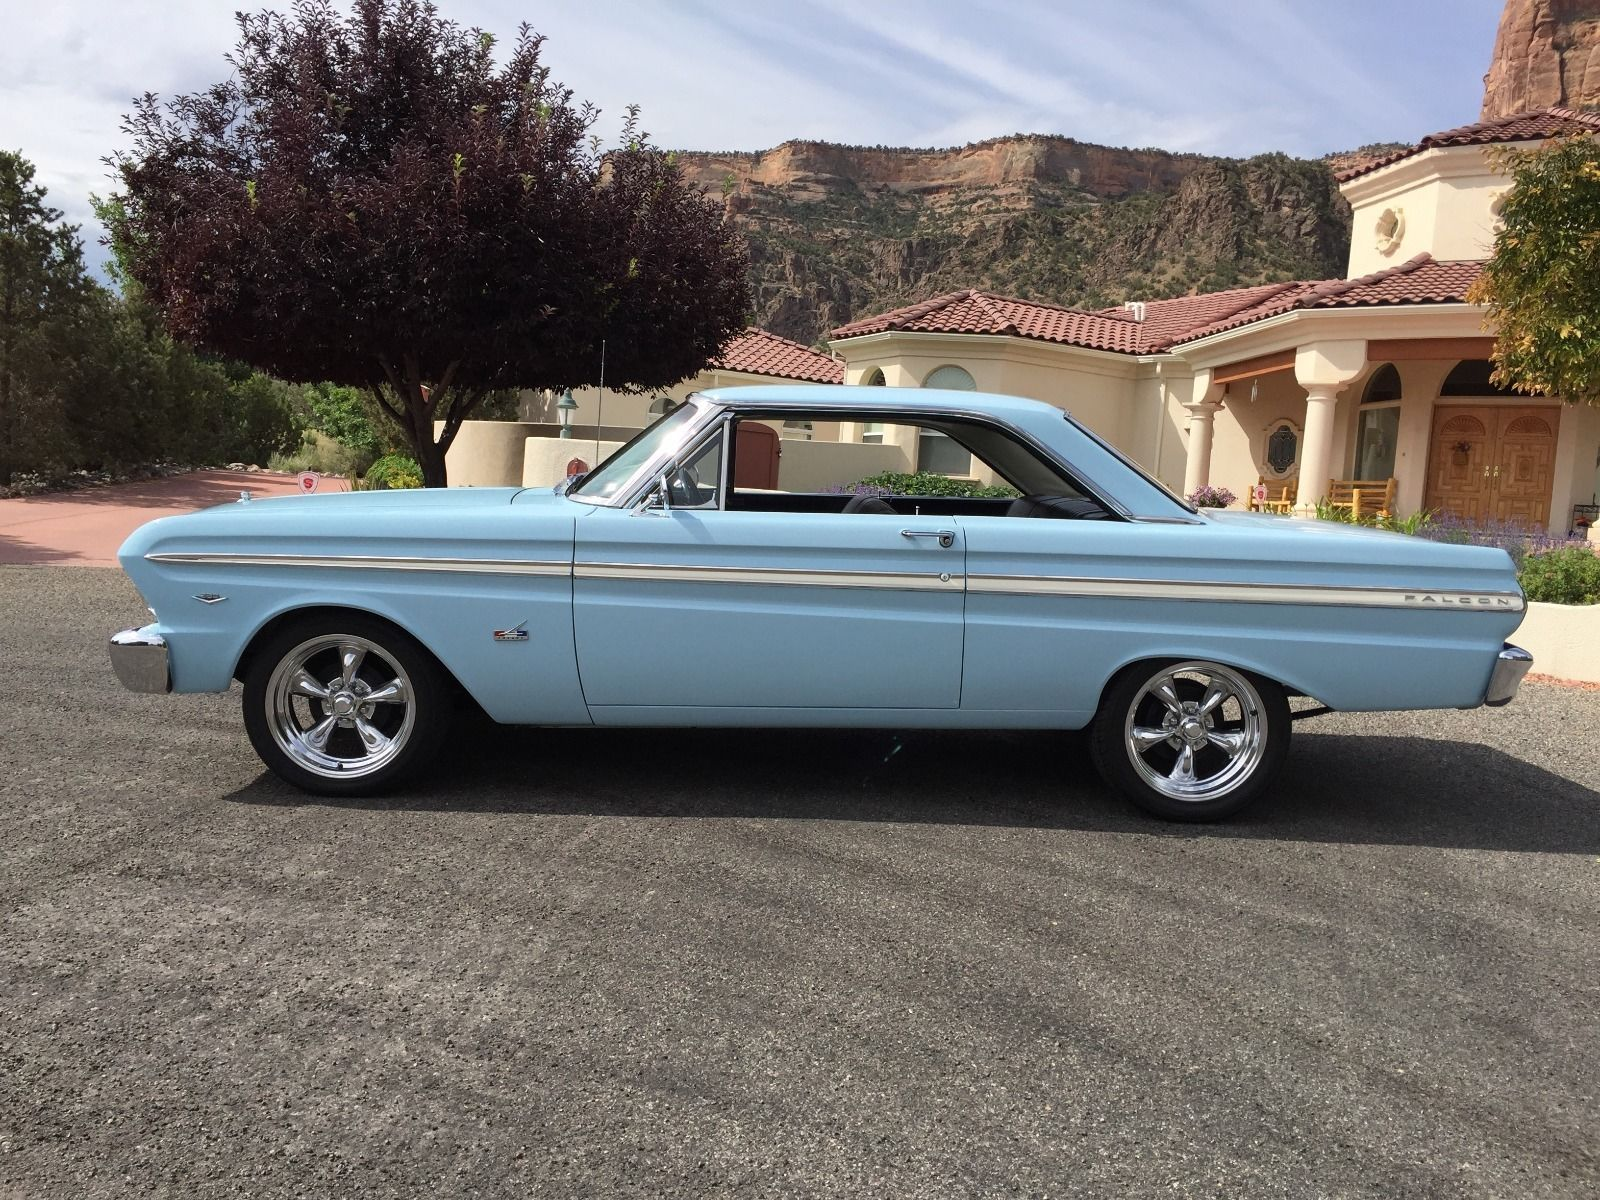 Details about 1969 Ford Falcon | 1965 Ford Falcon     My